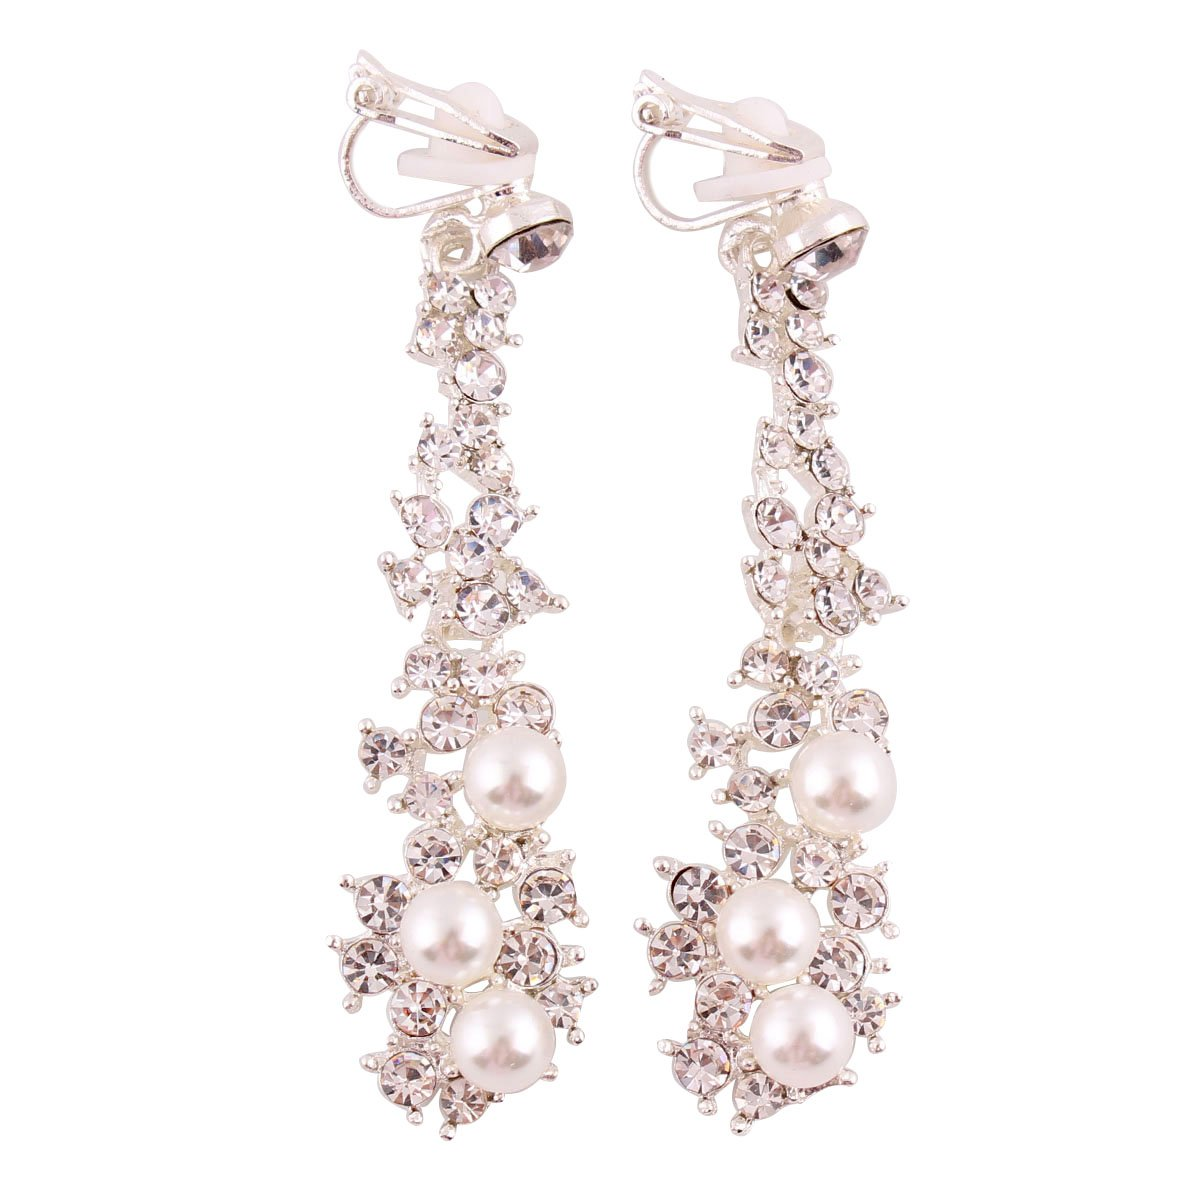 Grace Jun Luxury Bridal Rhinestone Clip on Earrings Non Piercing for Women Large Statement Earrings China XHEJ237